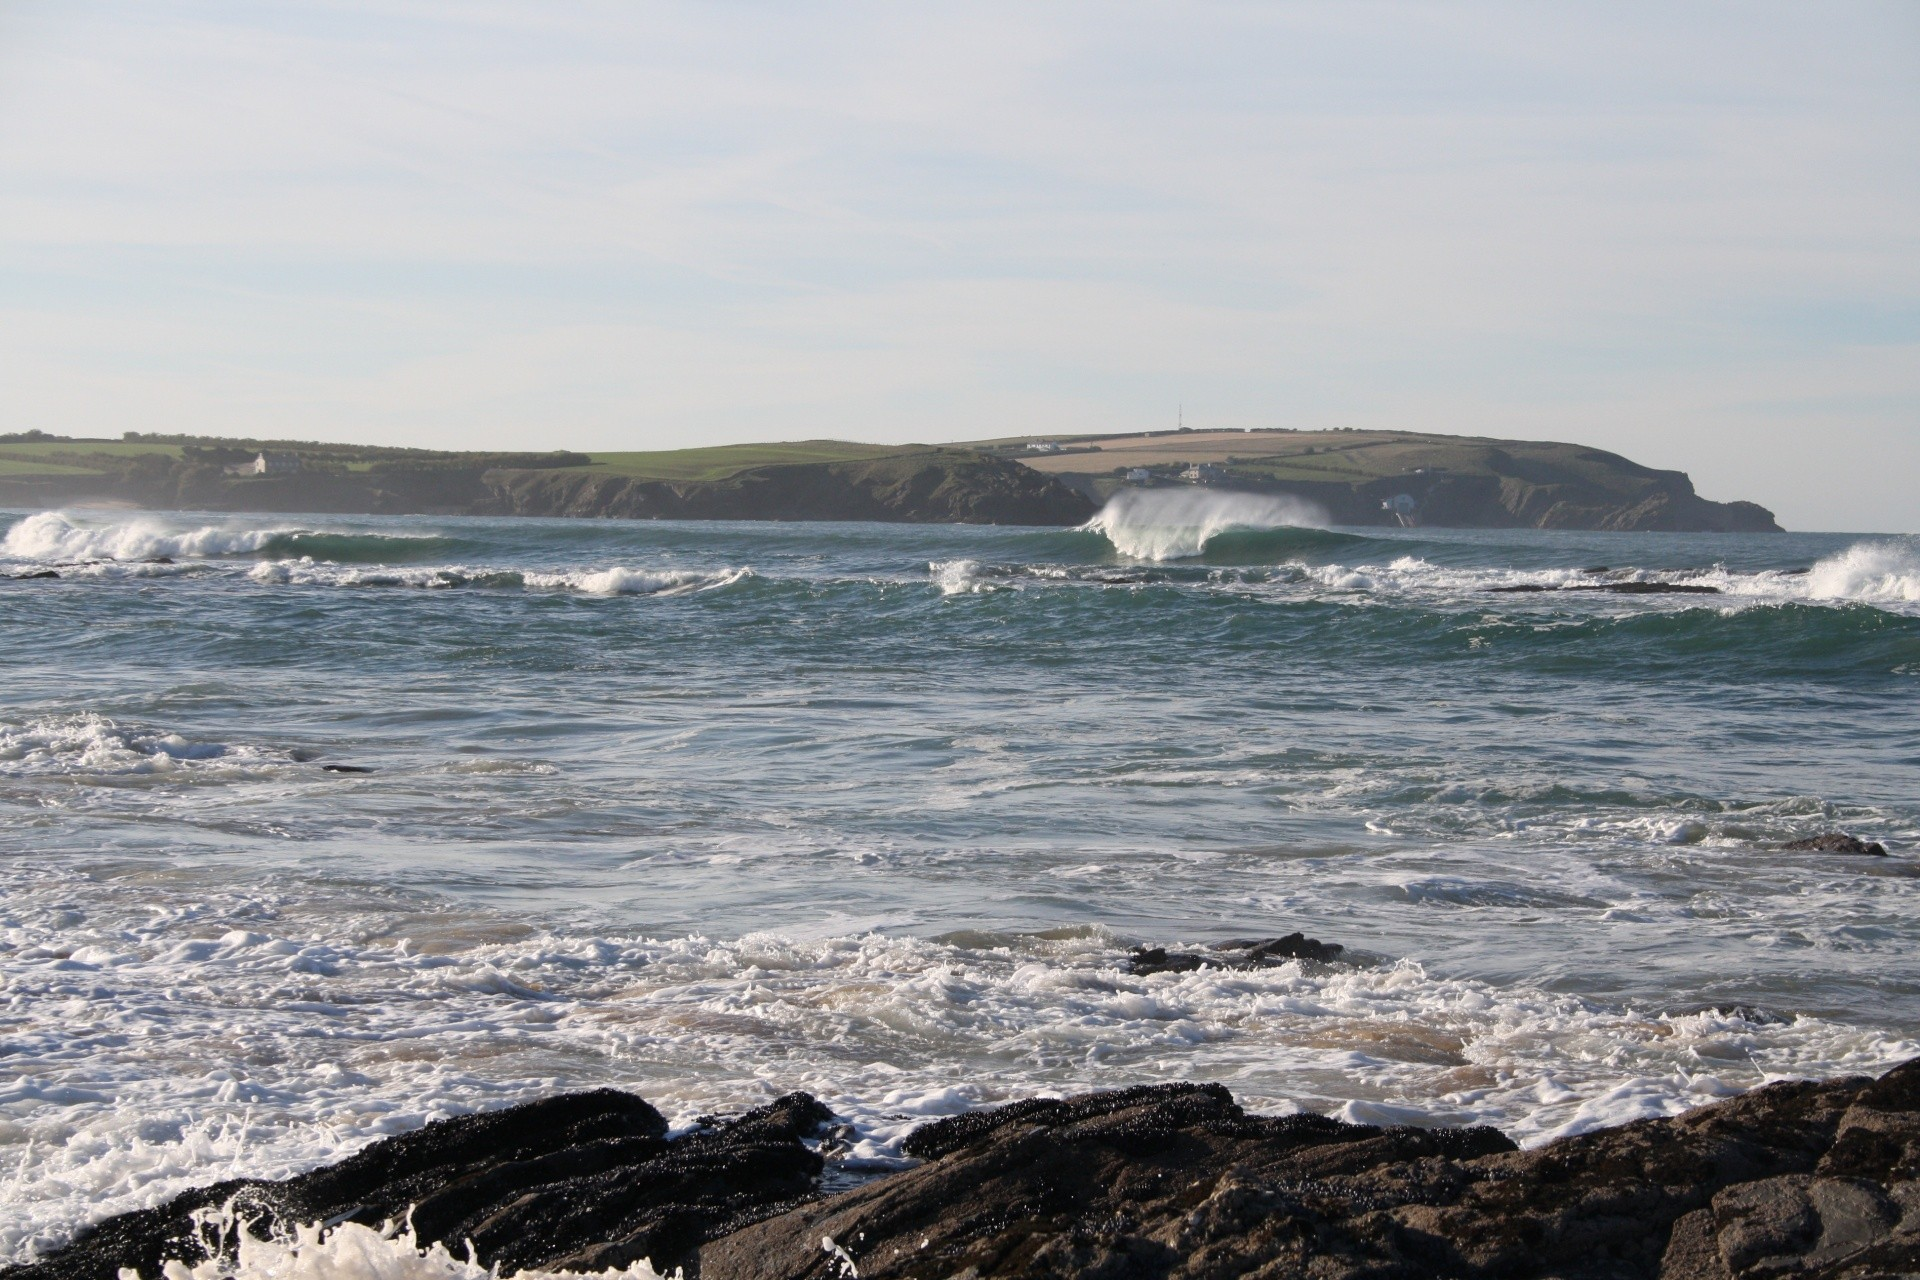 S_J_N's photo of Polzeath